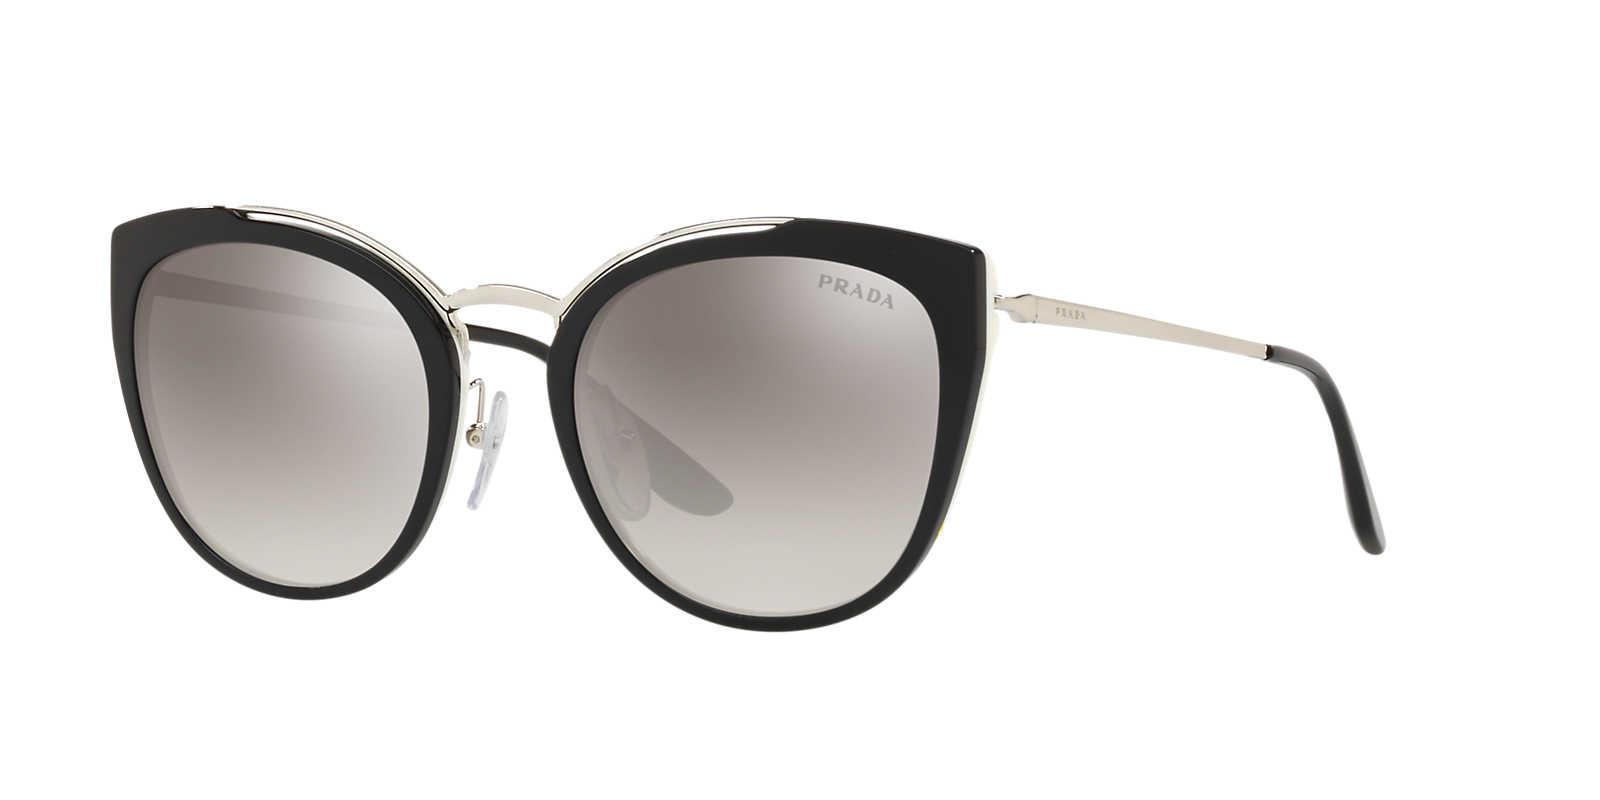 edc94496df Prada - Metallic Sunglass Pr 20us 54 - Lyst. View fullscreen